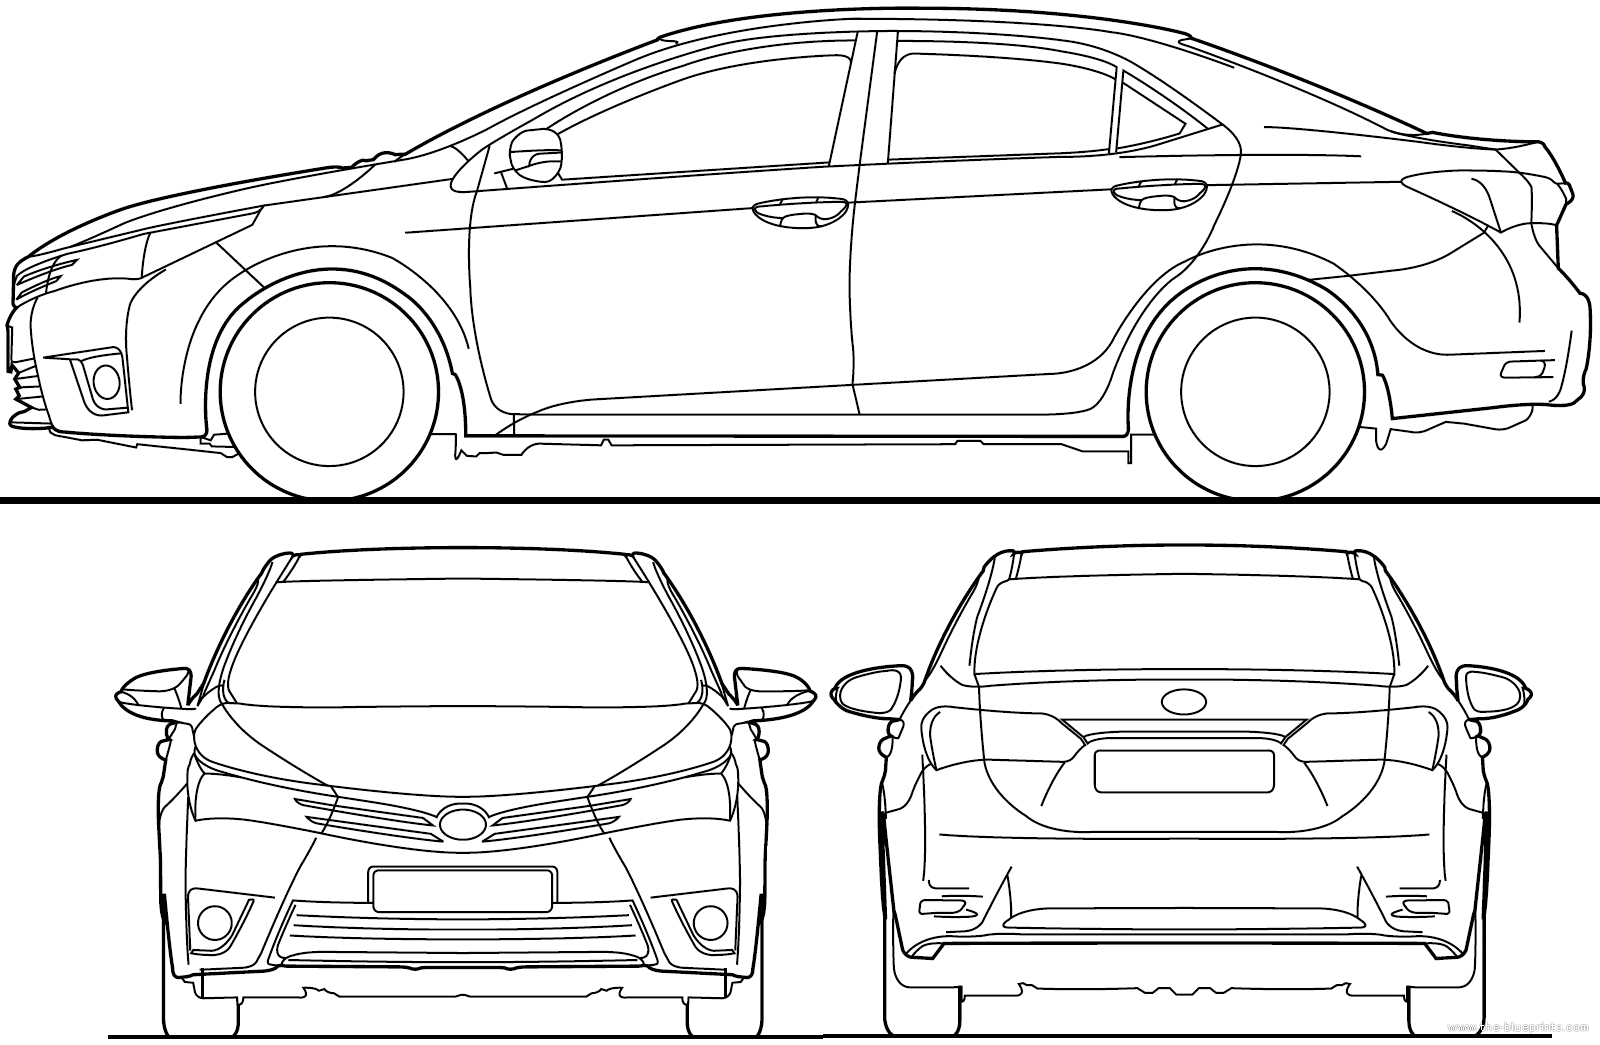 Toyota Corolla 2015 Dimensions All New Car Release And Reviews 2005 Engine Diagram Distributor Less Blueprints Cars